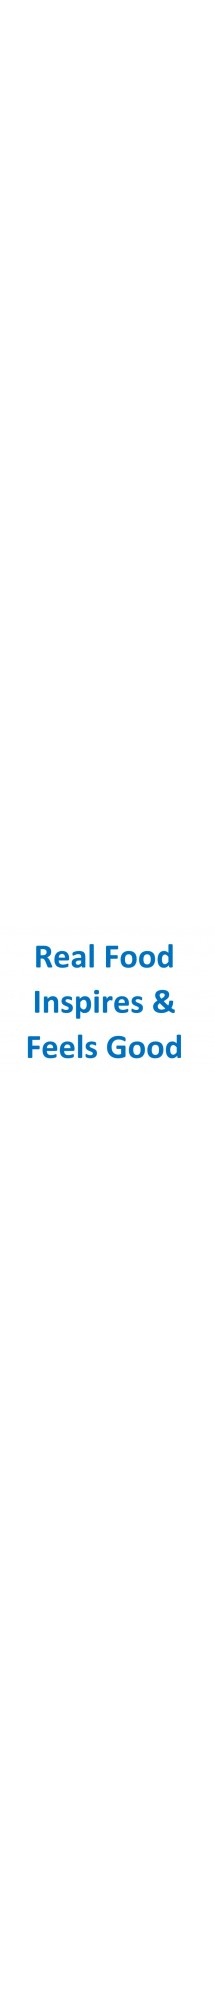 Real food inspires